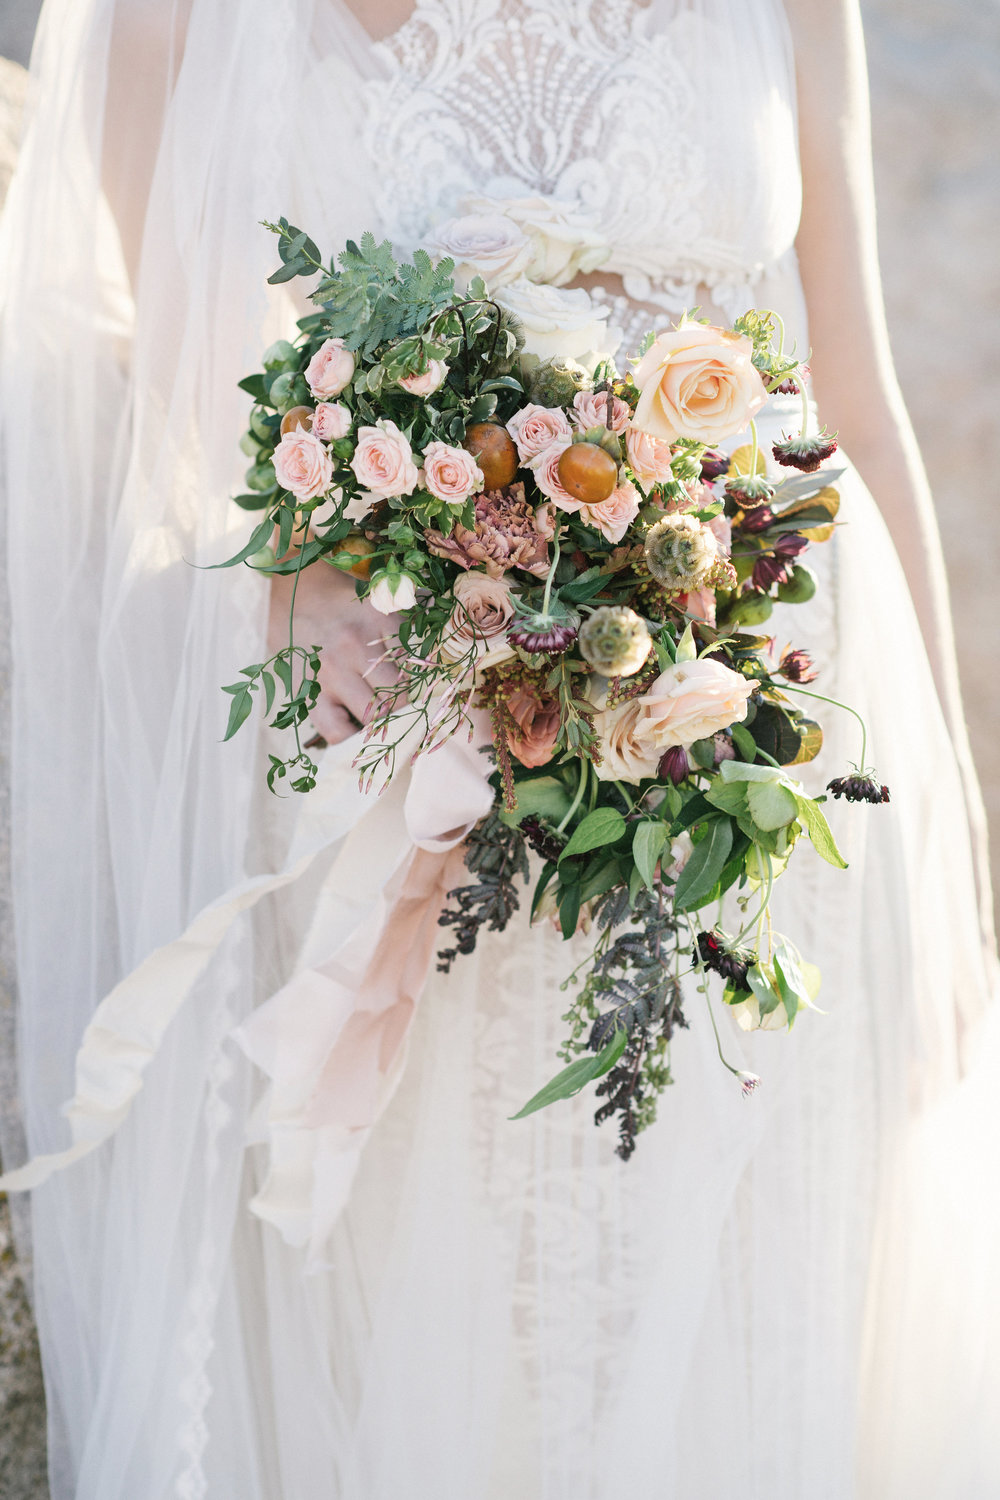 jessica-zimmerman-events-floral-event-design-flowers-florist-bridal-portraits-joshua-tree-california-desert-pictures-organic-bouquet-whitney-bower-sydnie-ross